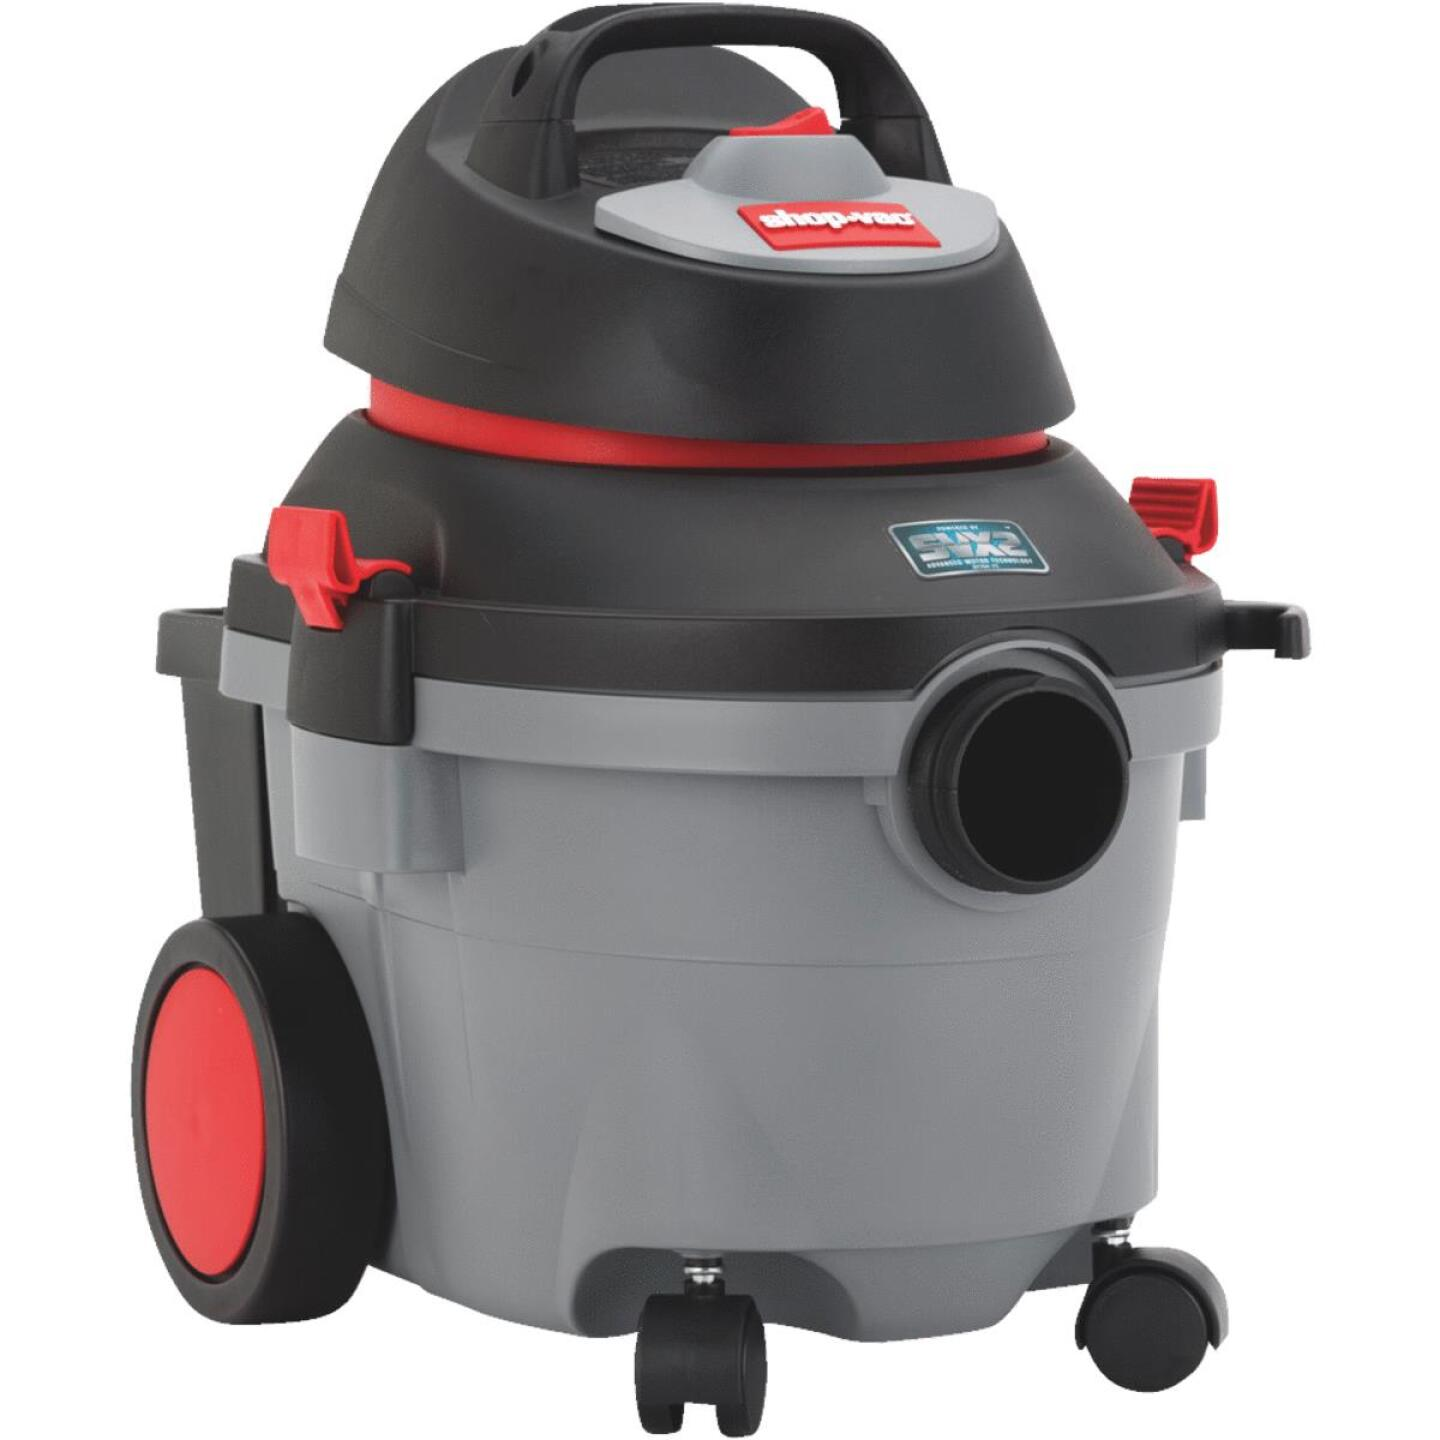 Shop Vac 4 Gal. 5.5-Peak HP Wet/Dry Vacuum Image 1